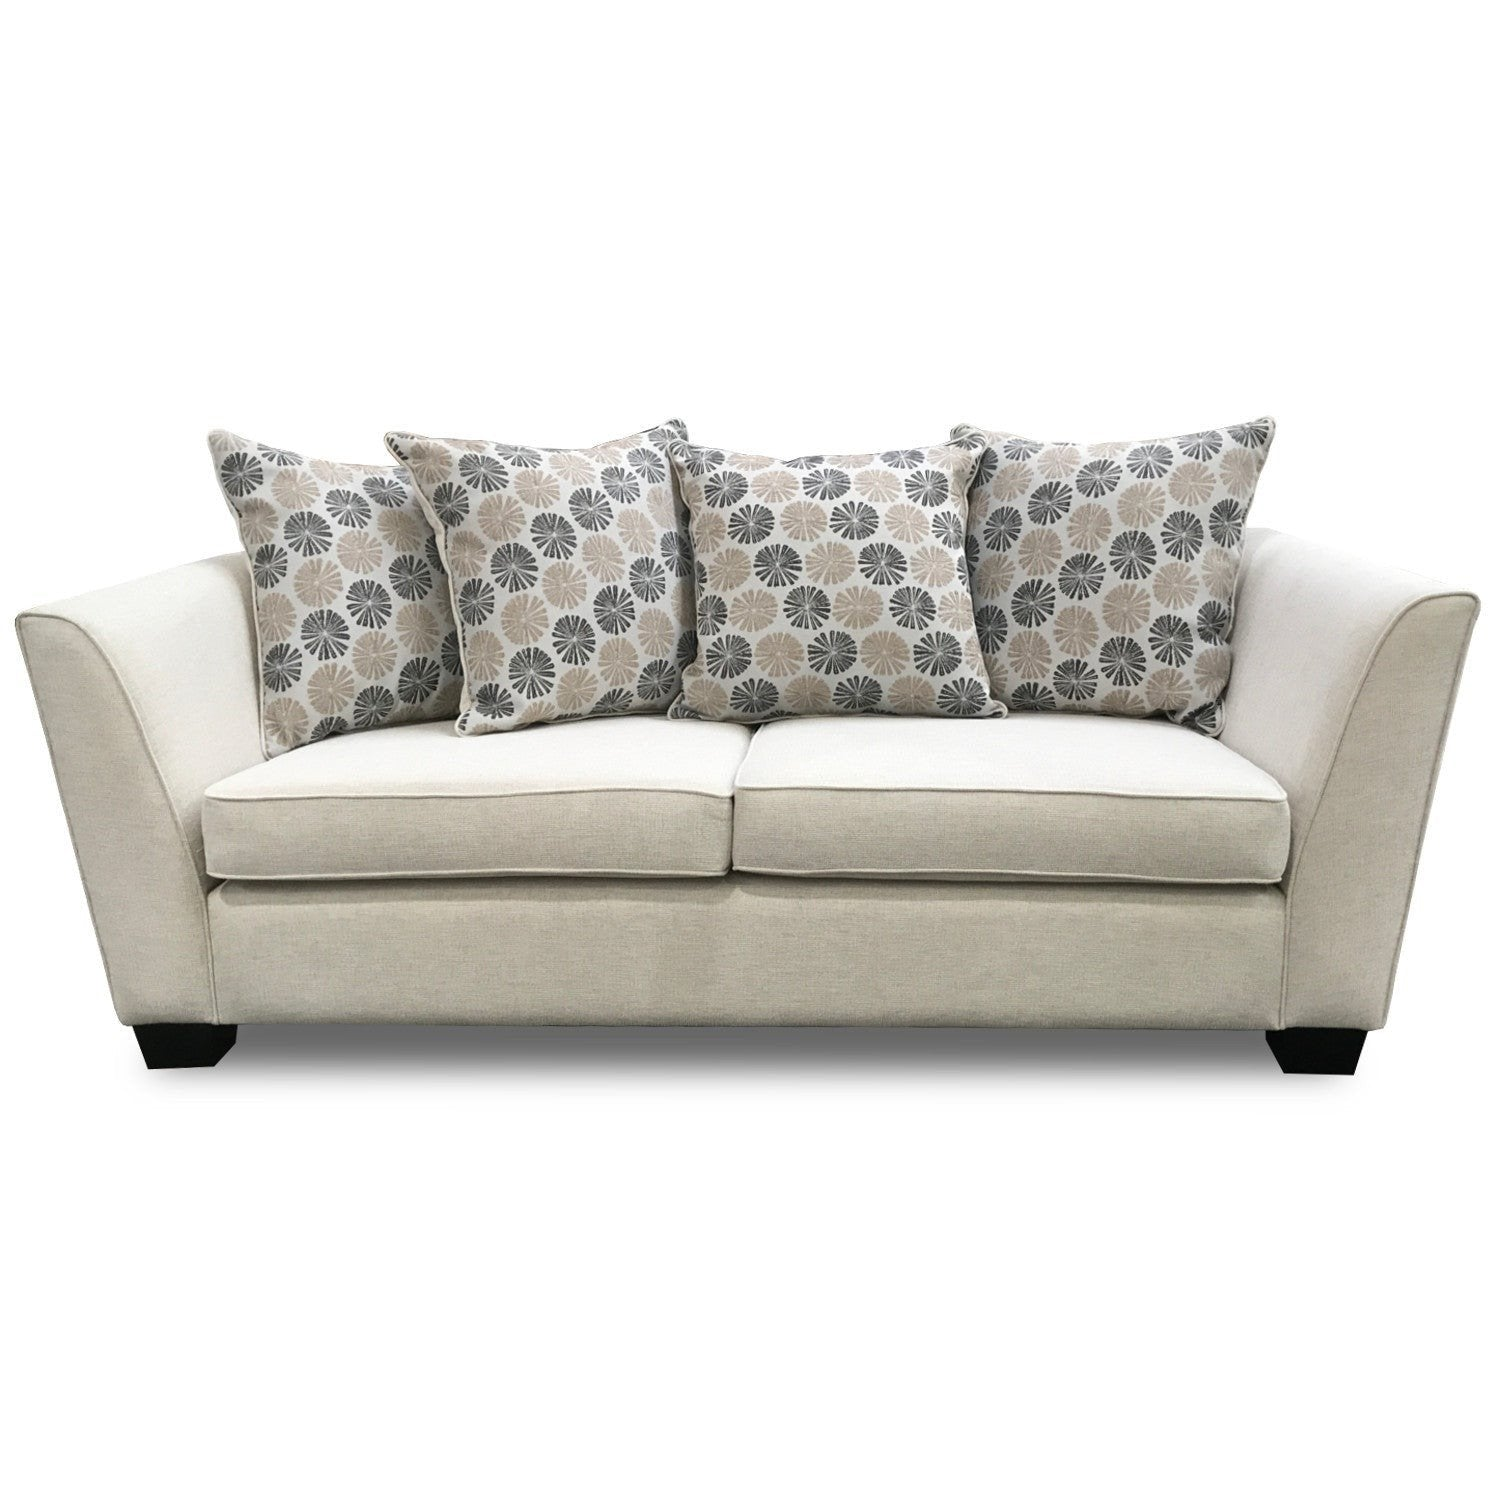 Chanel 2.5 Seater Sofa